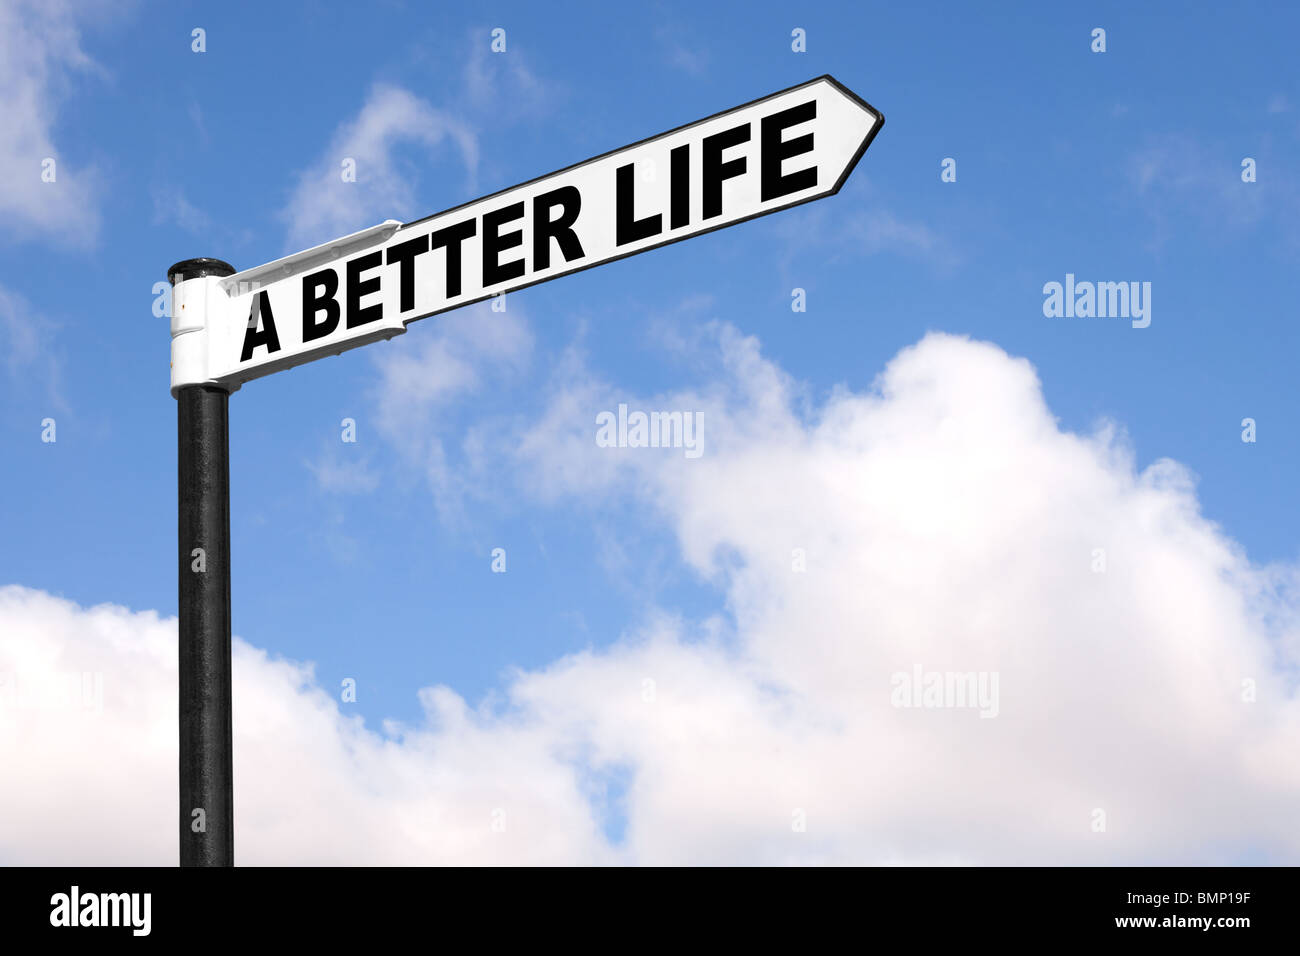 Concept image of a black and white signpost with the words A Better Life against a blue cloudy sky. - Stock Image